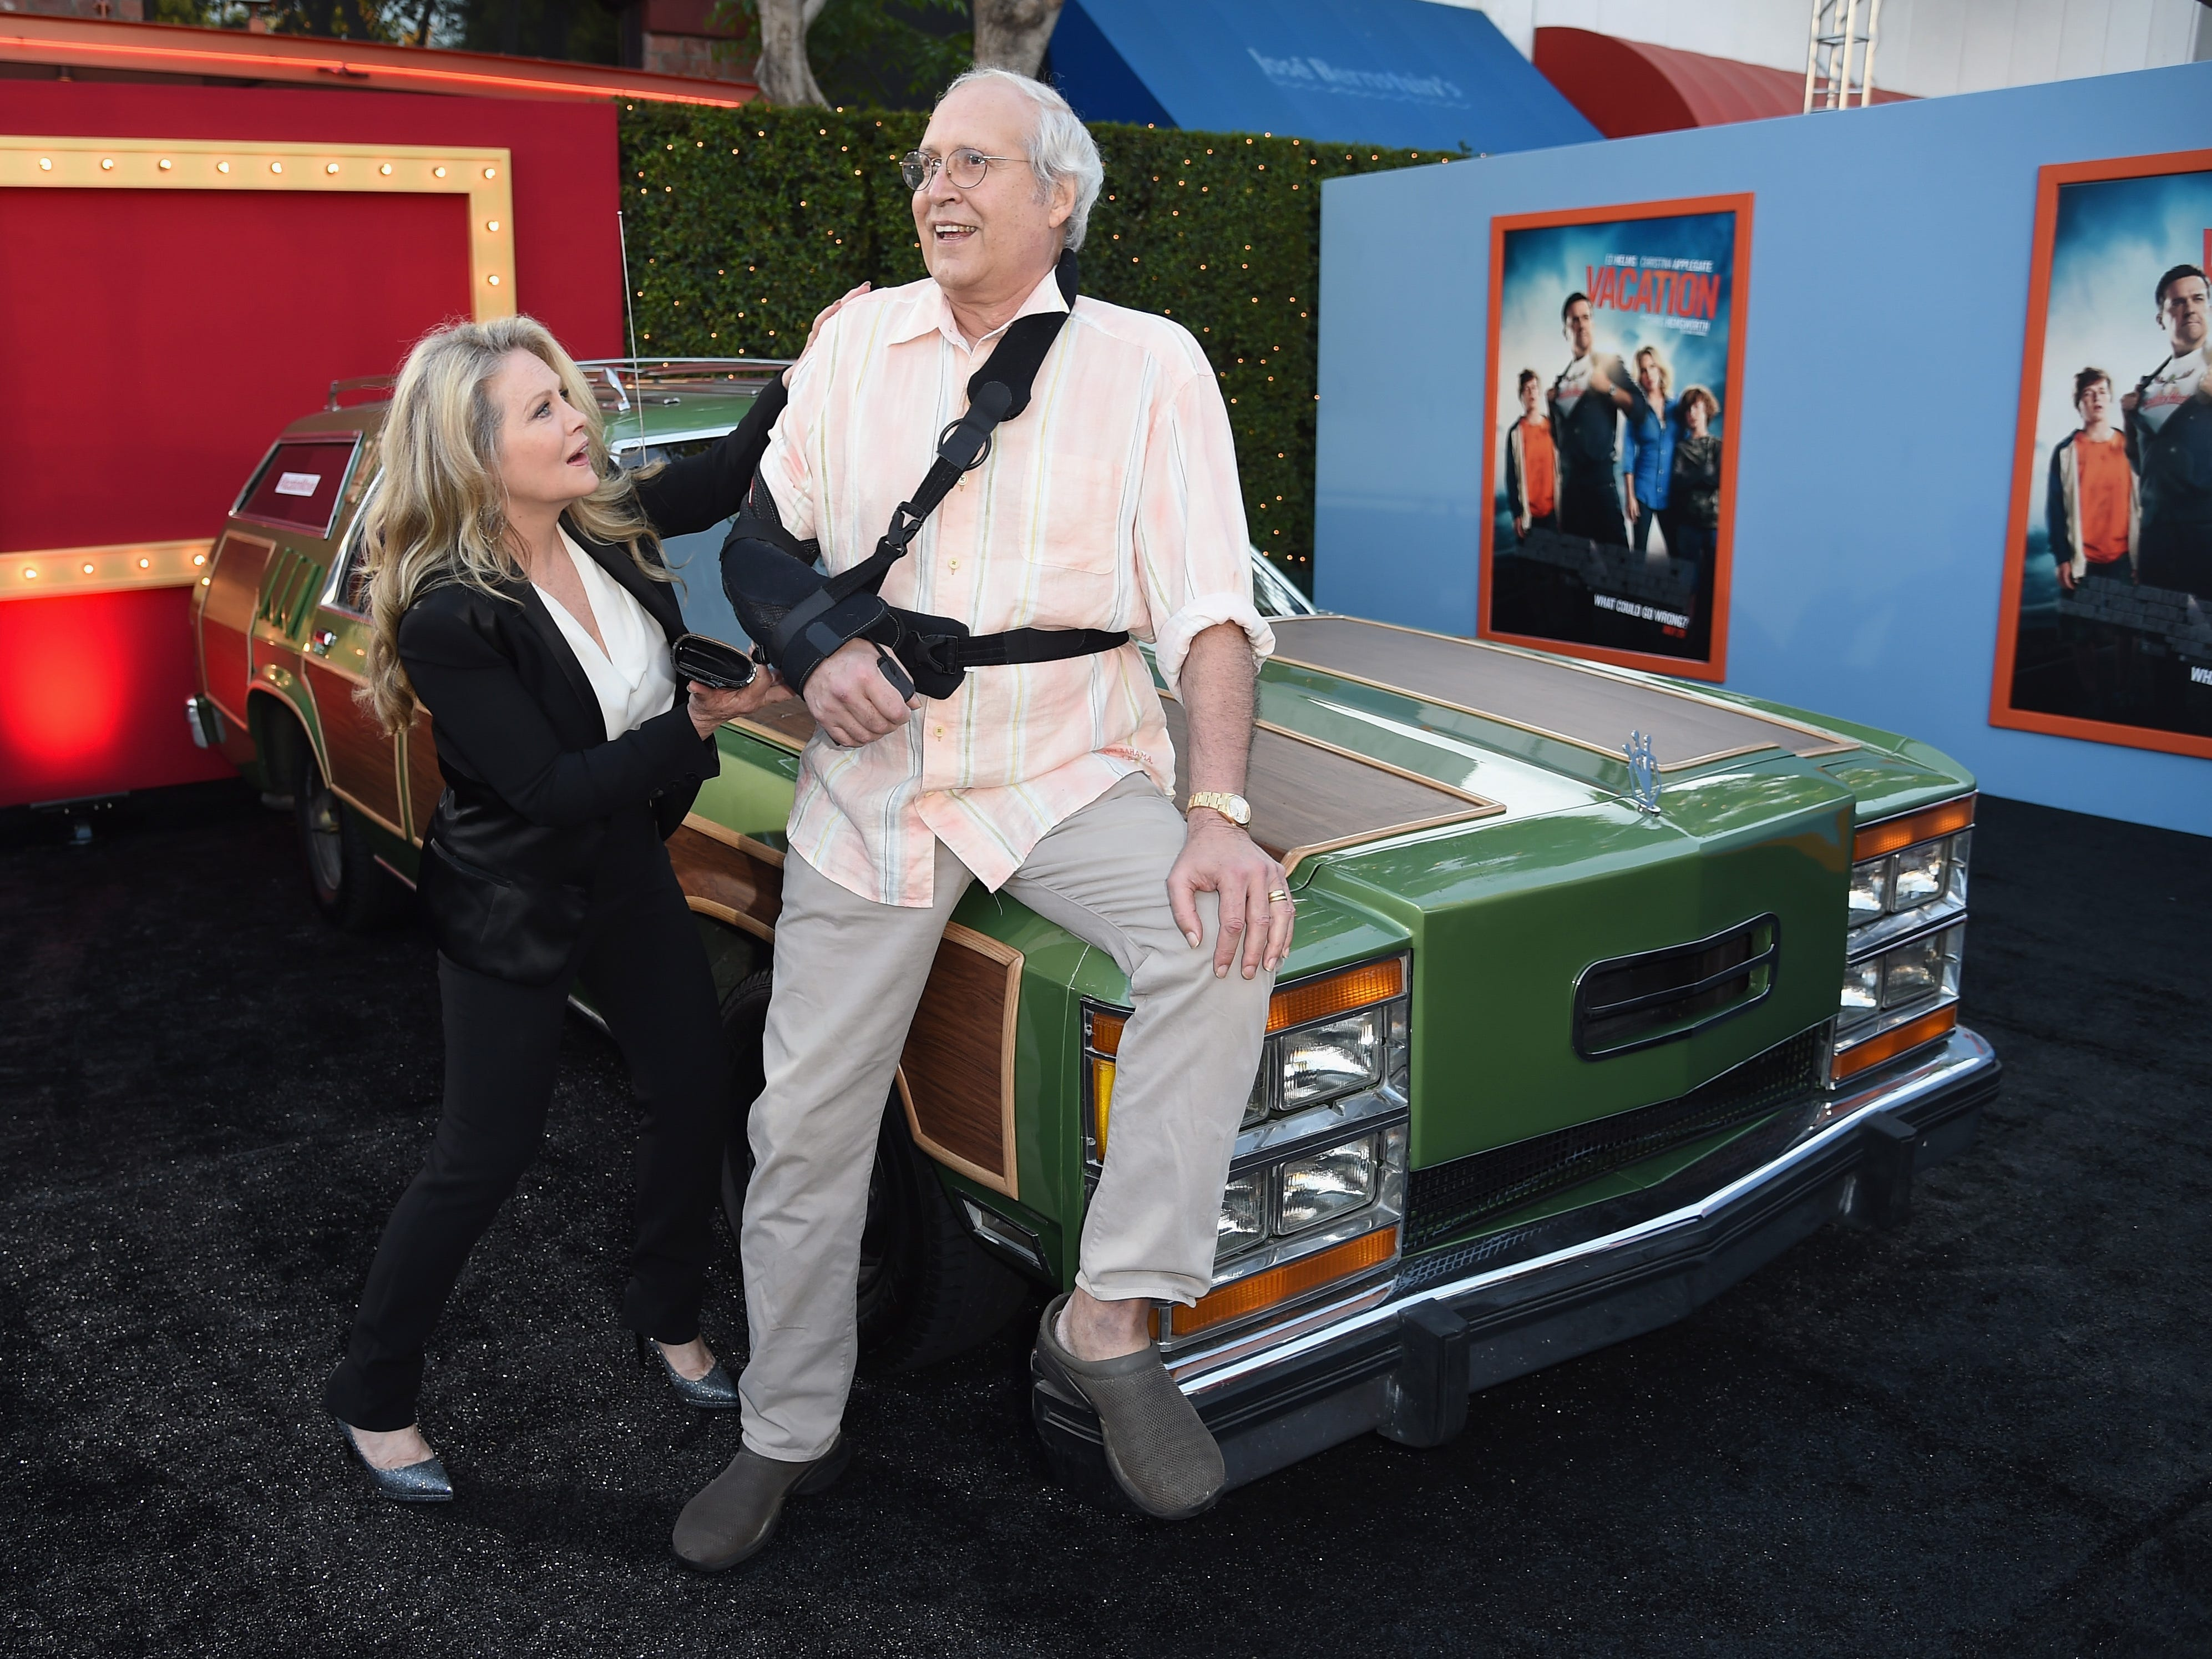 """WESTWOOD, CA - JULY 27:  Actors Beverly D'Angelo and Chevy Chase attend the premiere of Warner Bros. Pictures """"Vacation"""" at Regency Village Theatre on July 27, 2015 in Westwood, California.  (Photo by Kevin Winter/Getty Images)"""